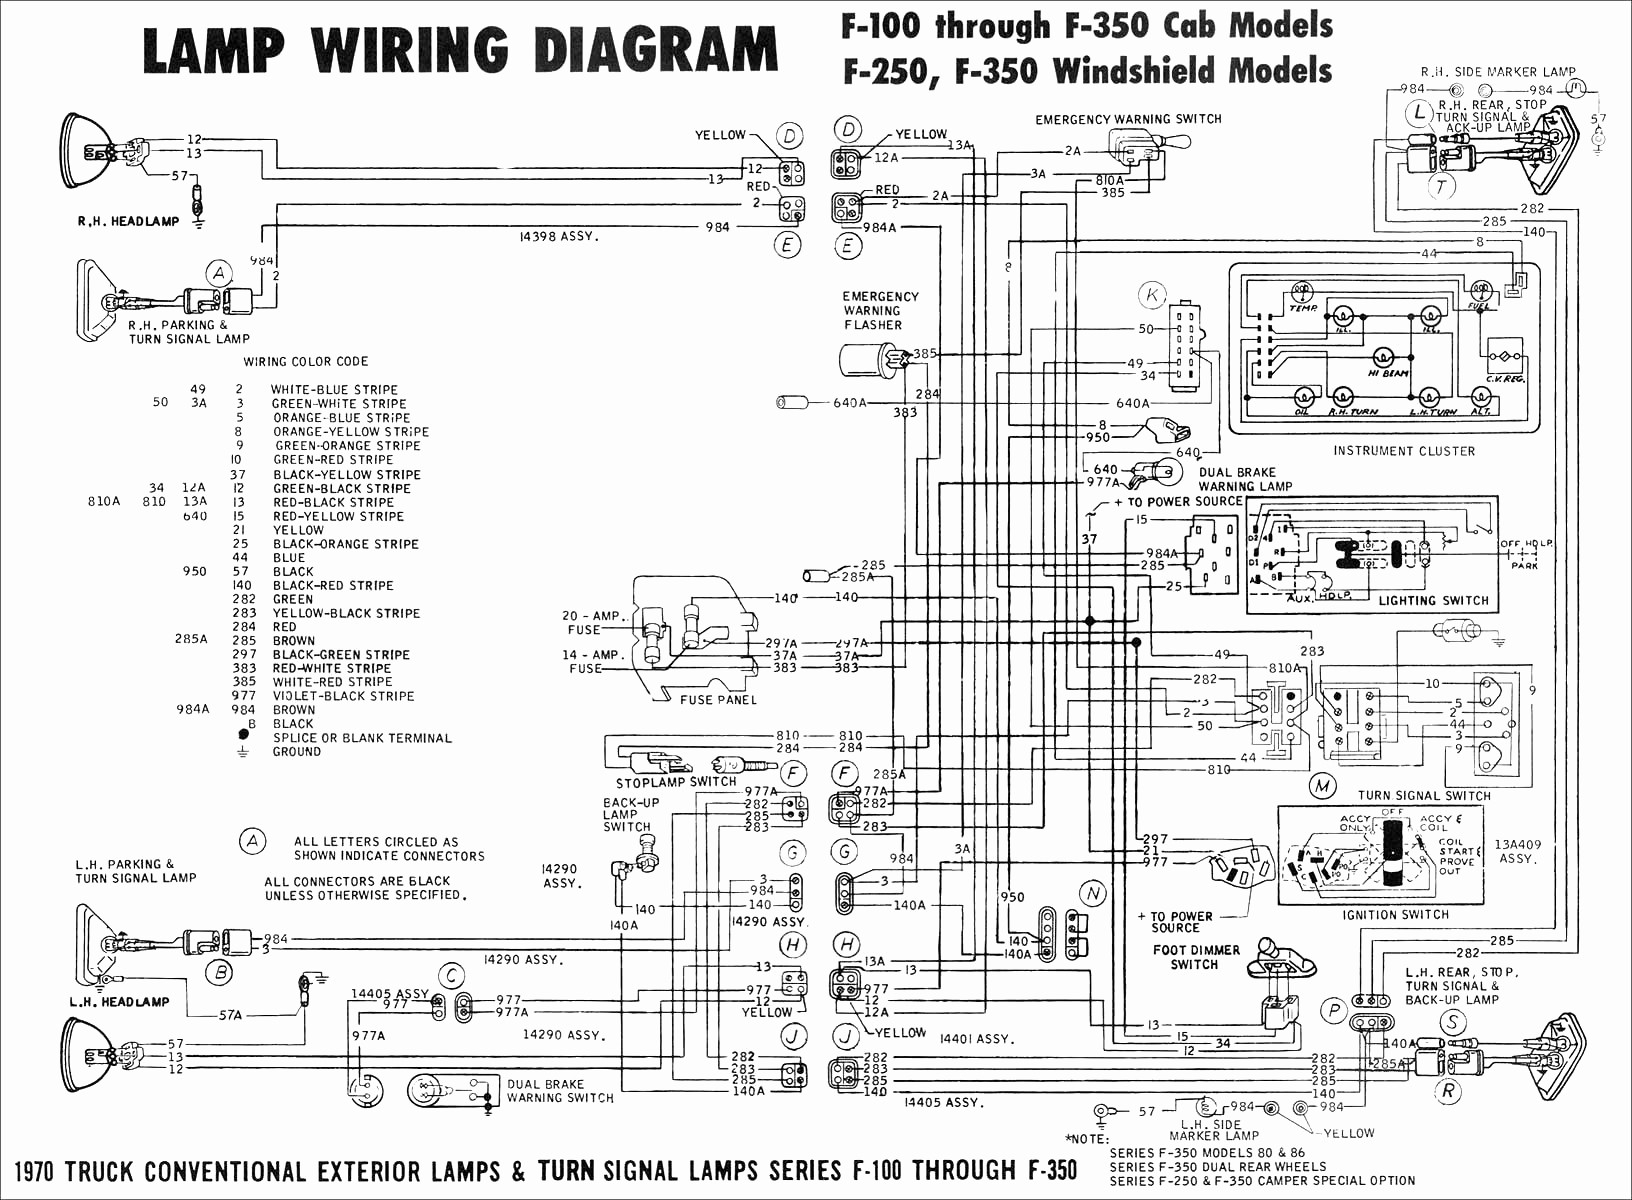 true t 72f wiring diagram Download-True Tuc 27f Wiring Diagram New Wiring Diagram True Freezer T 49f Wiring Diagram New Free Wiring 20-k